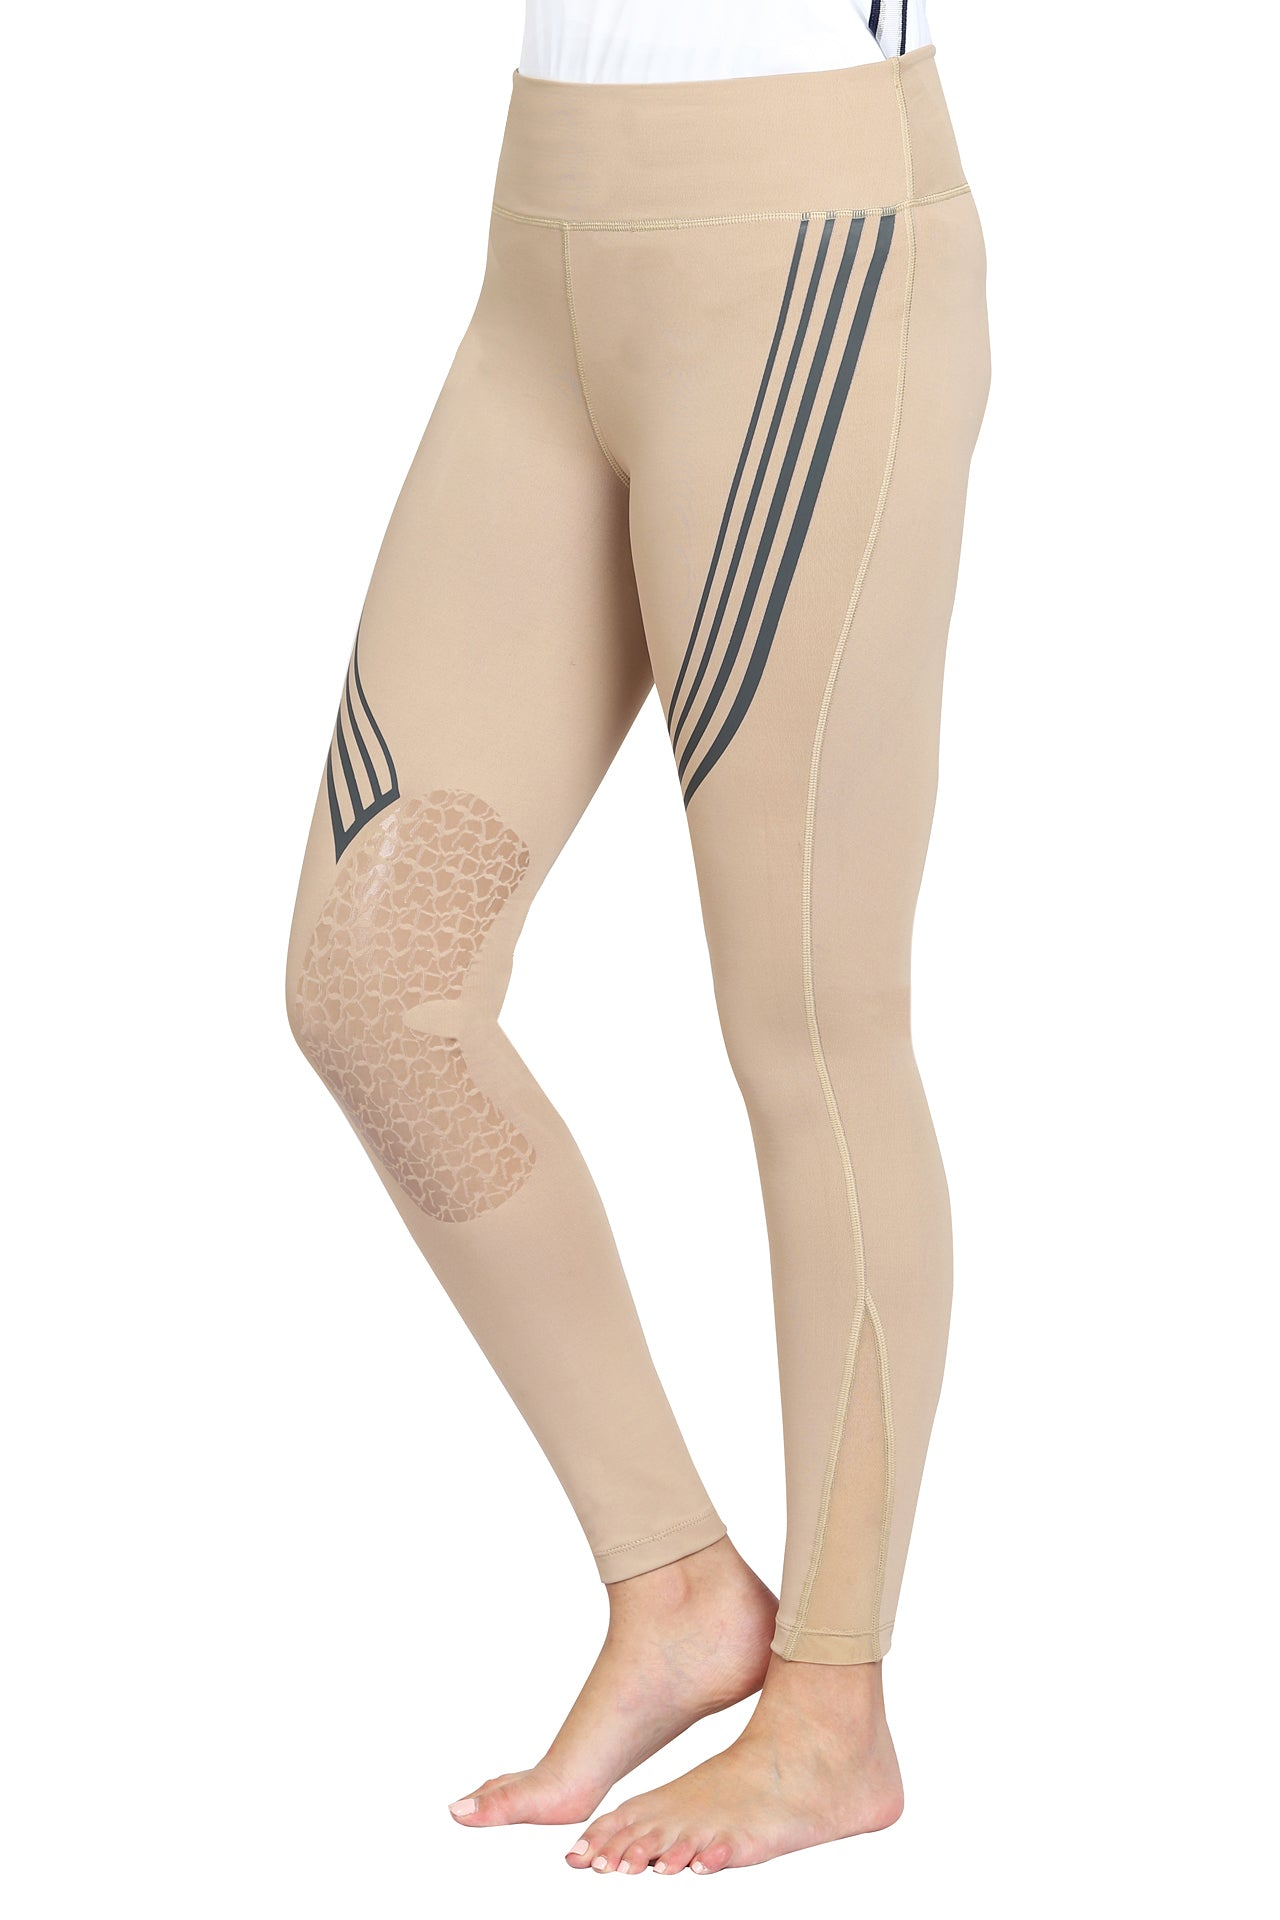 TUFFRIDER LADIES PINTA TIGHTS_1